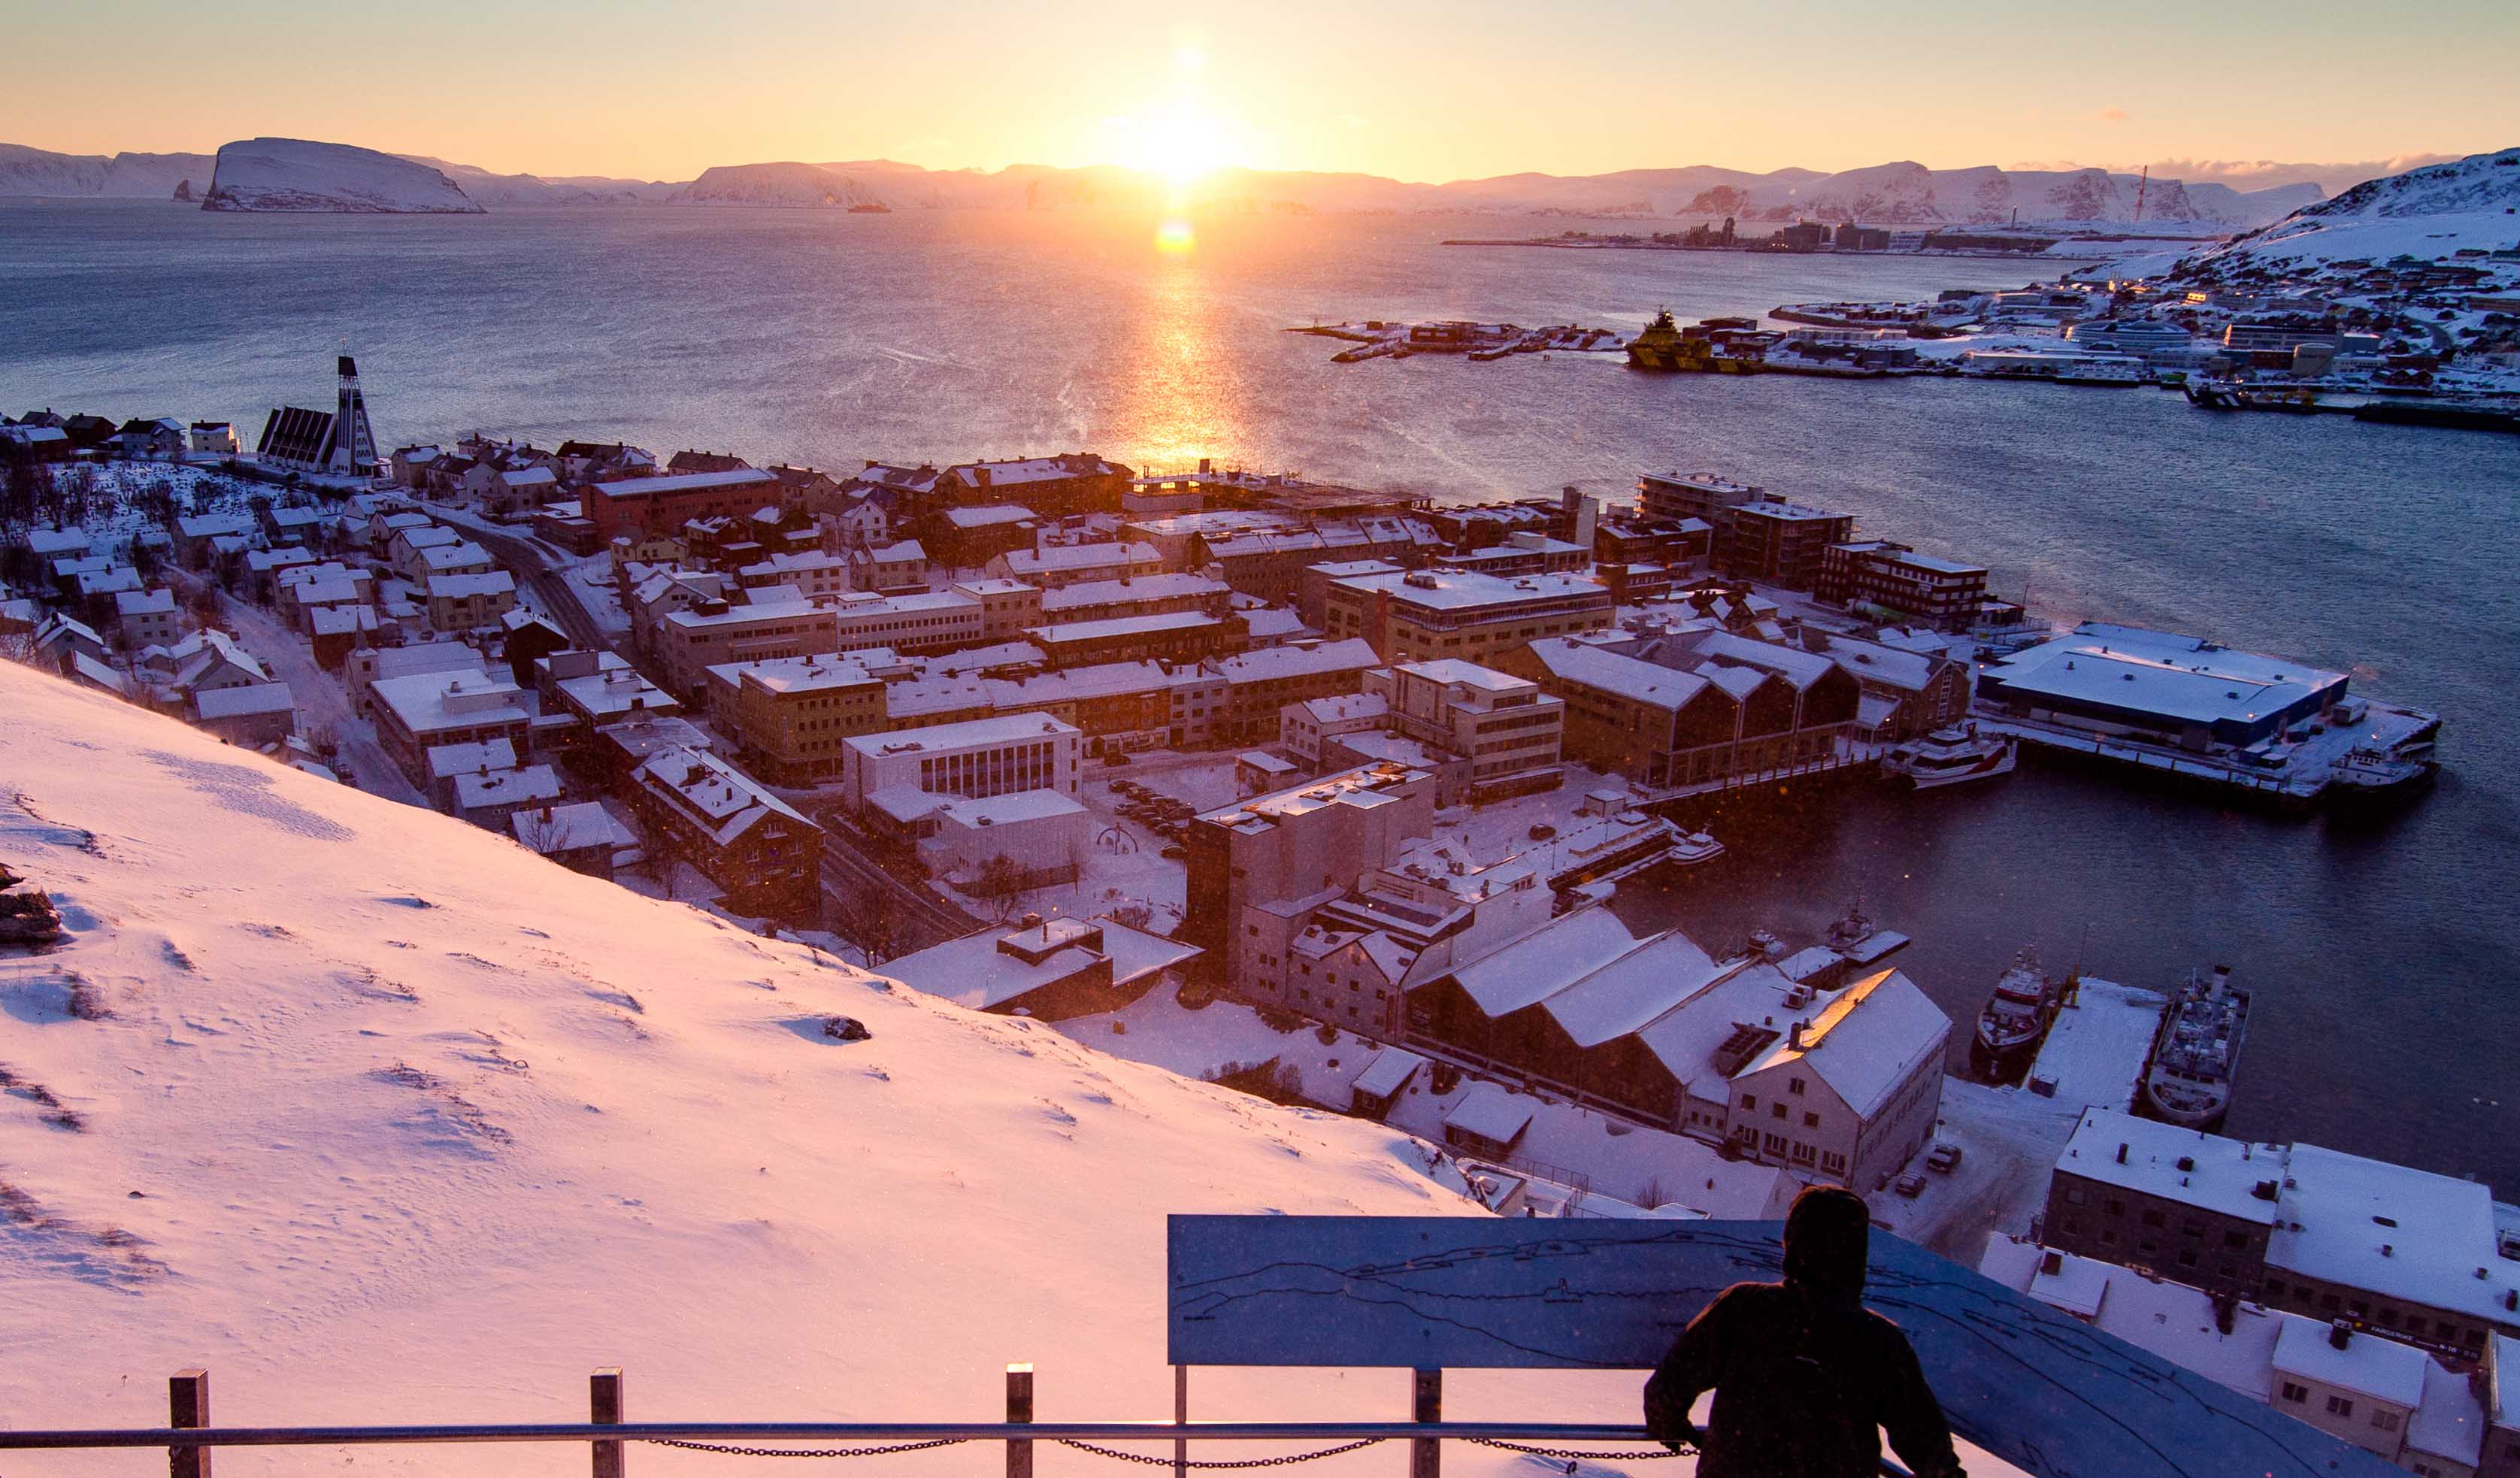 Sunset above the winter landscape of Hammerfest, Finnmark.